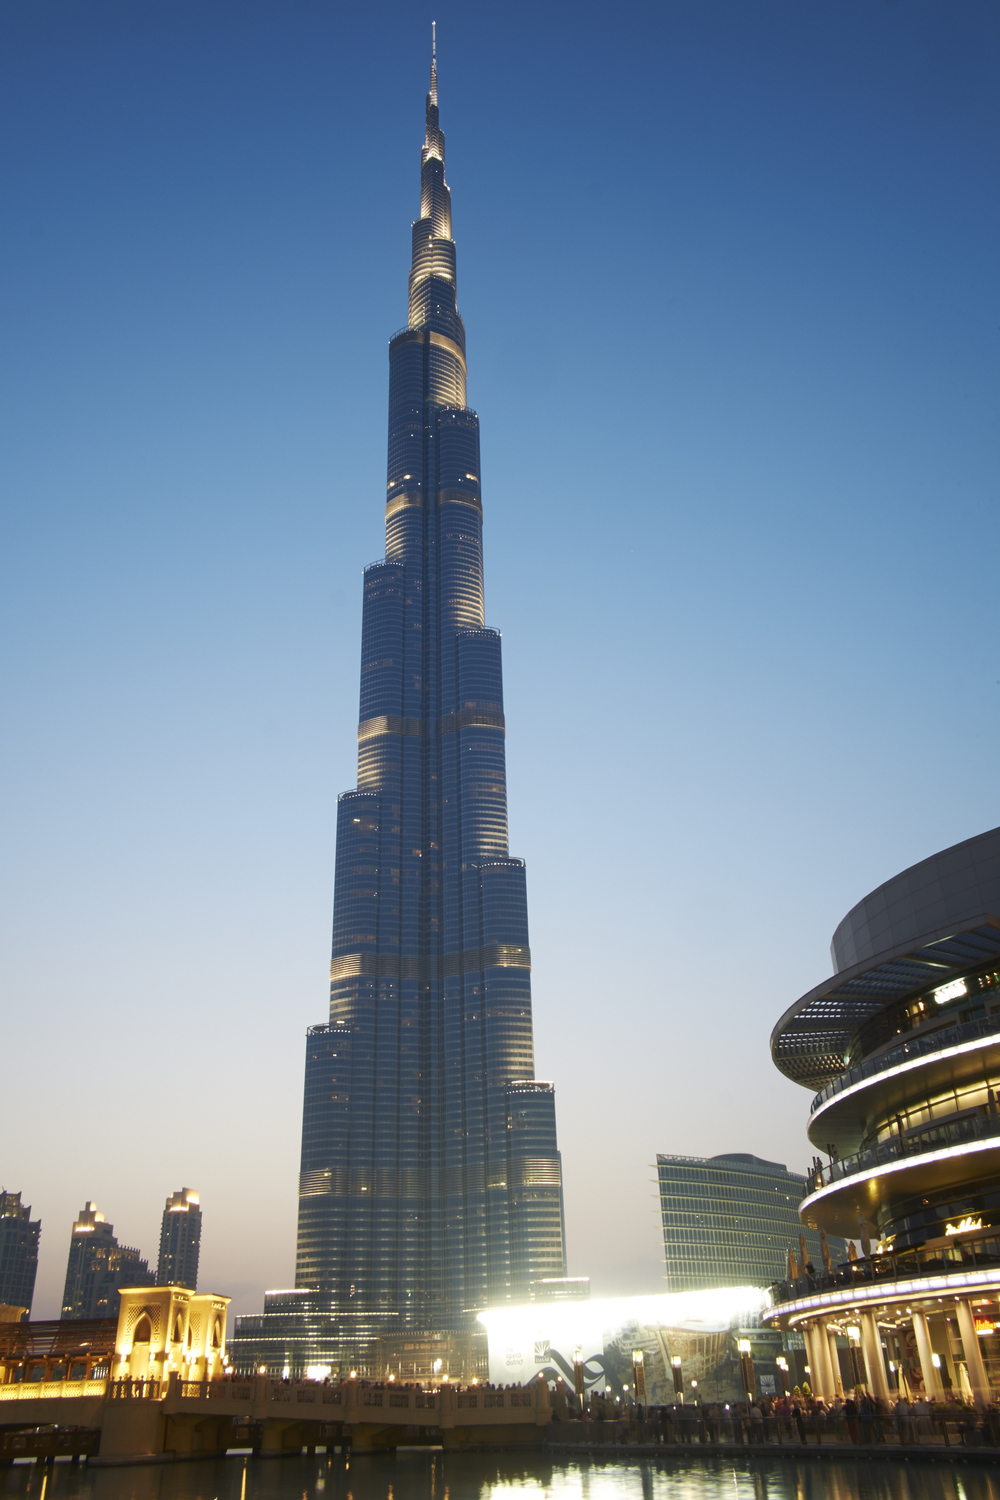 The Burj Khalifa at a staggering 828 metres high